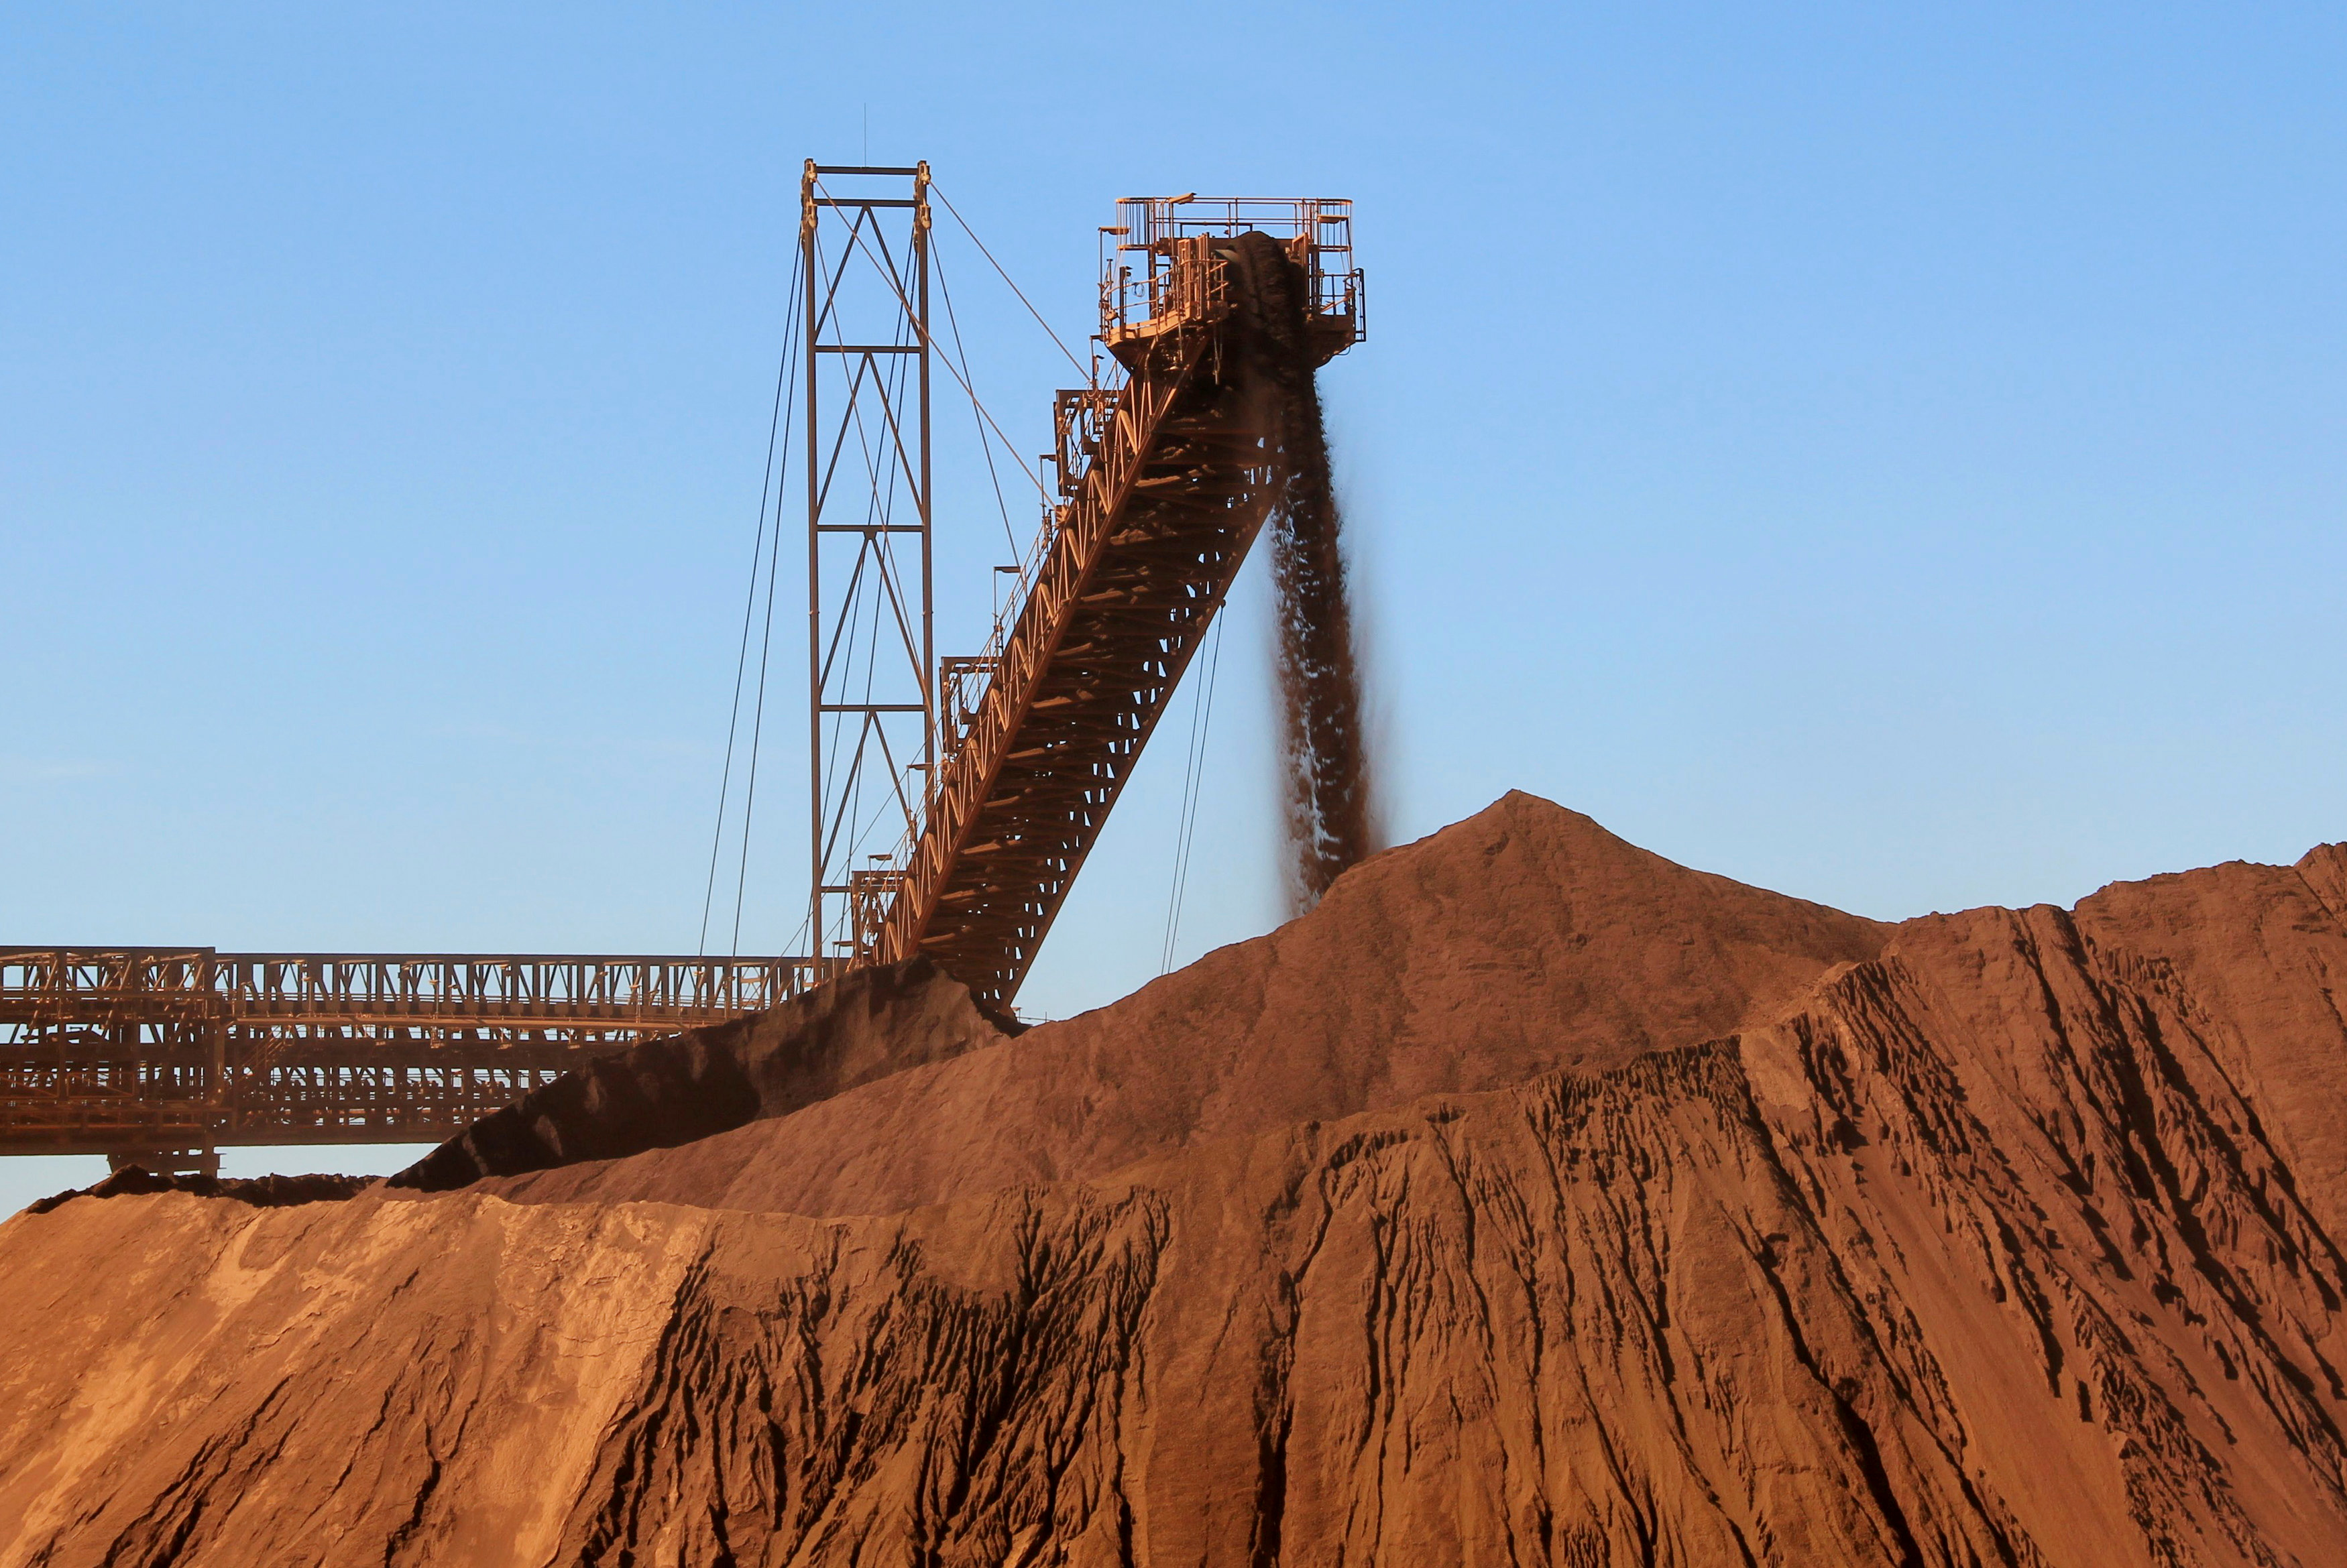 iron ore is loaded into a pile at Fortescue Metals  mine